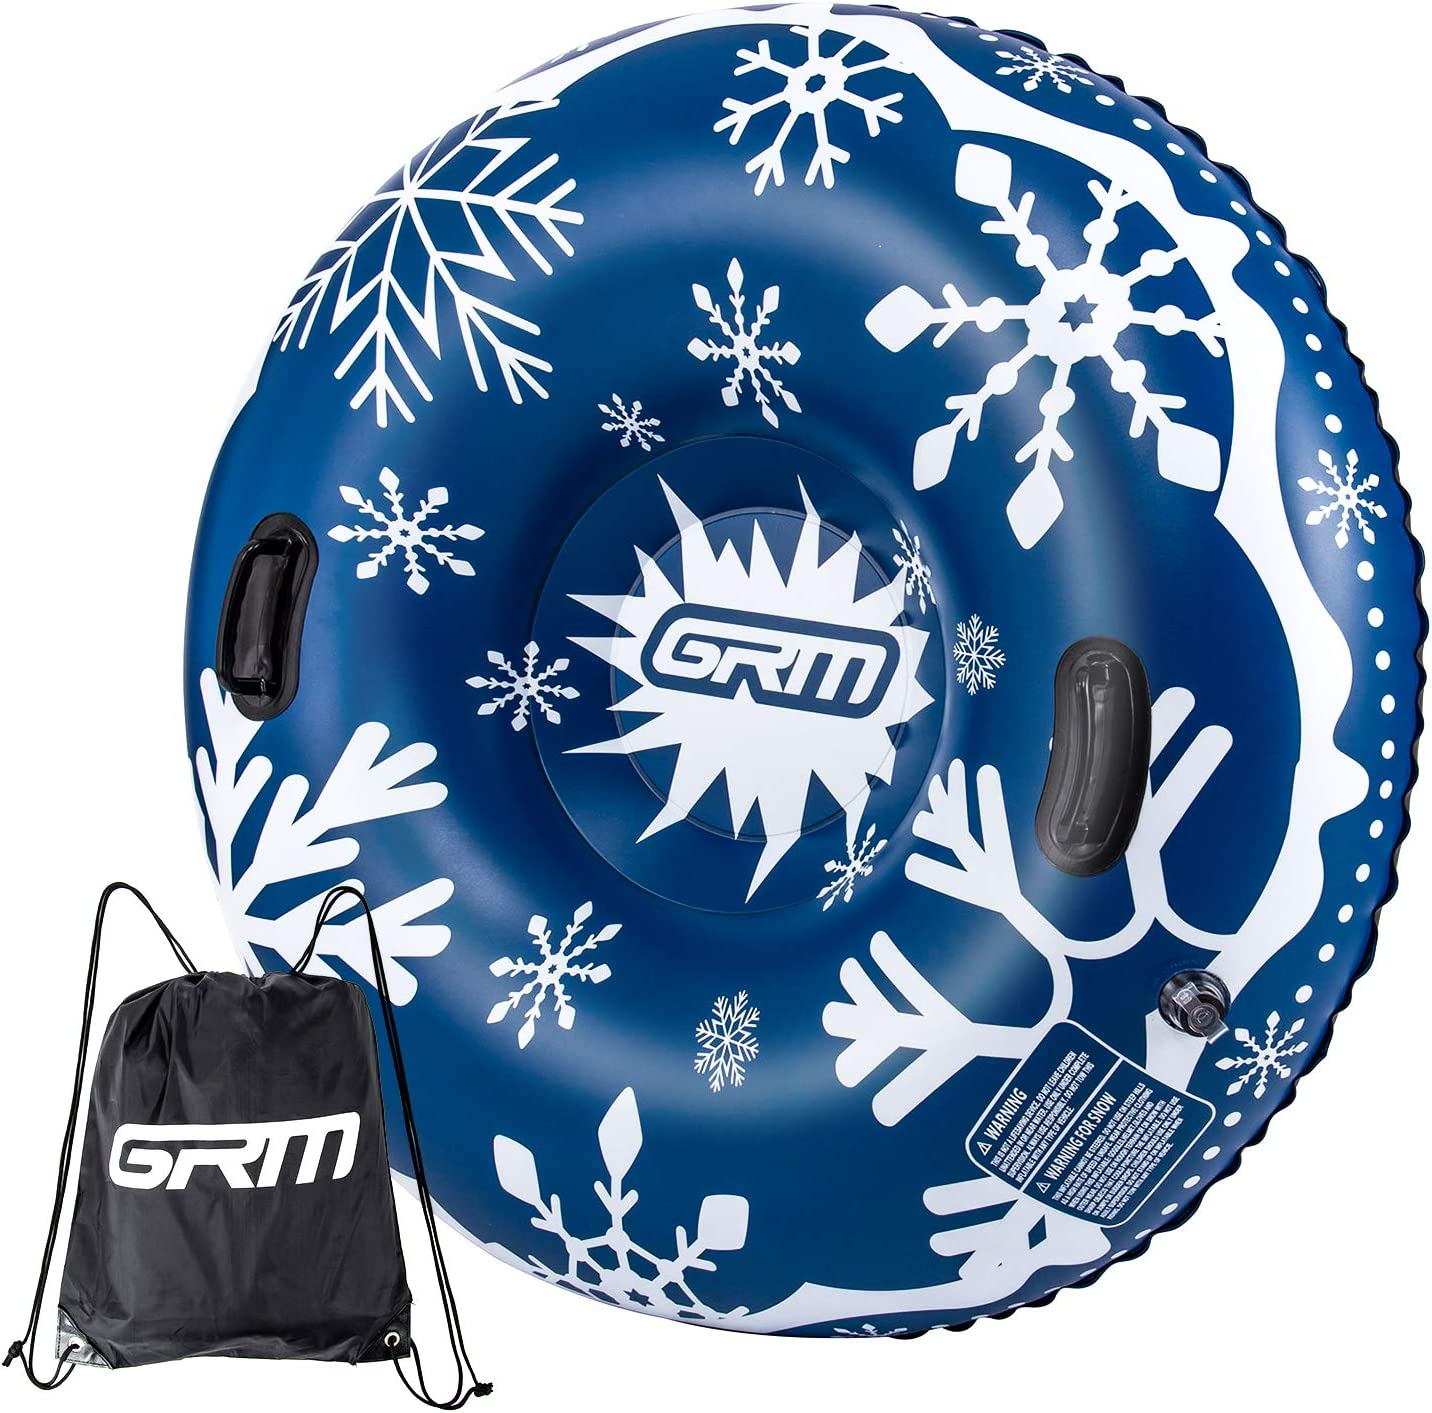 GRM Snow Tube, 47 Inch Sleds for Snow Heavy Duty Inflatable Sledding Tube for Kids and Adults Winter Snow, Blue/Black